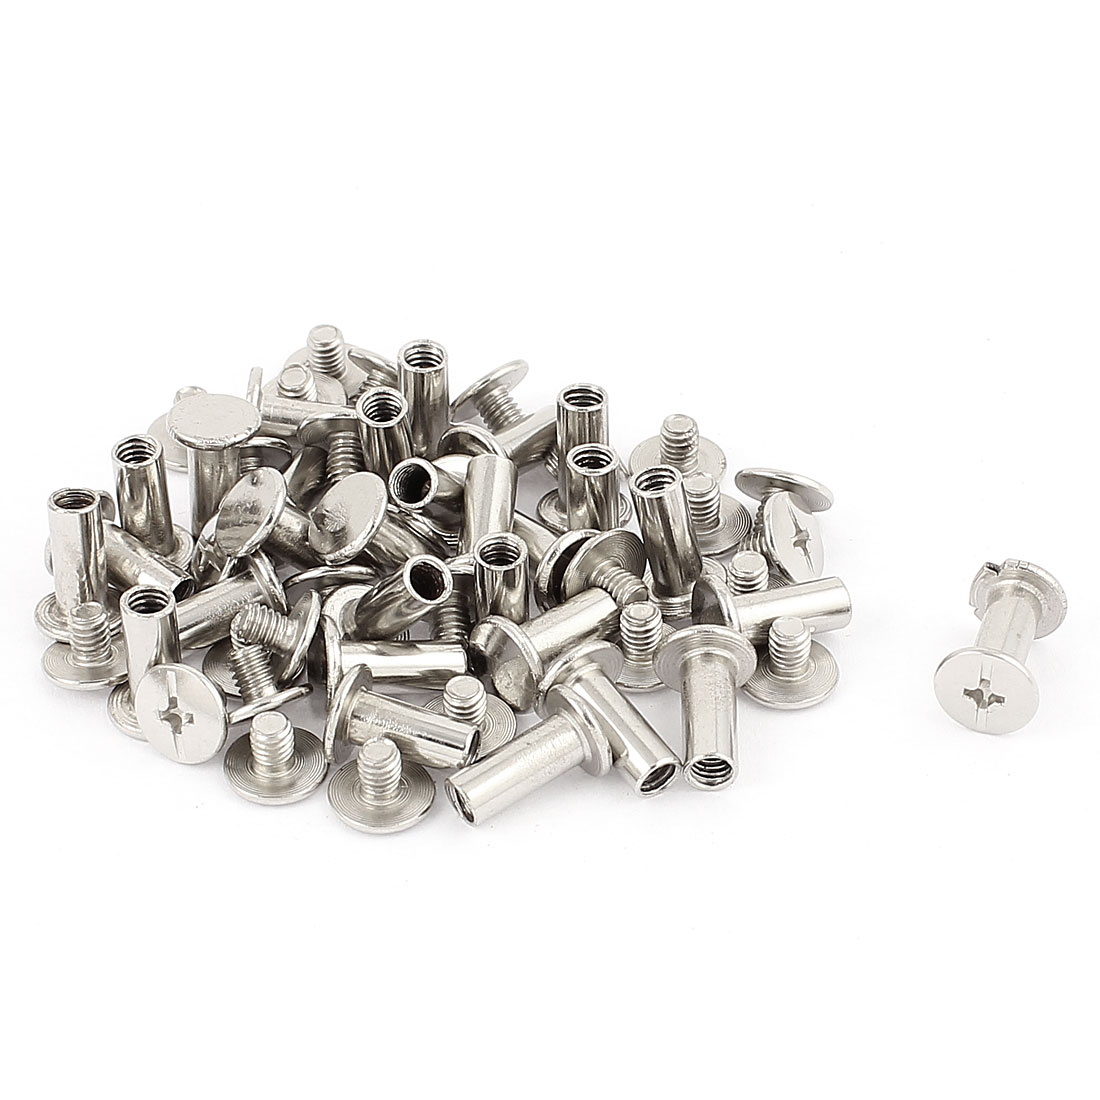 30Pcs 5mm Nickel Plated Binding Screw Post for Scrapbook Photo Albums